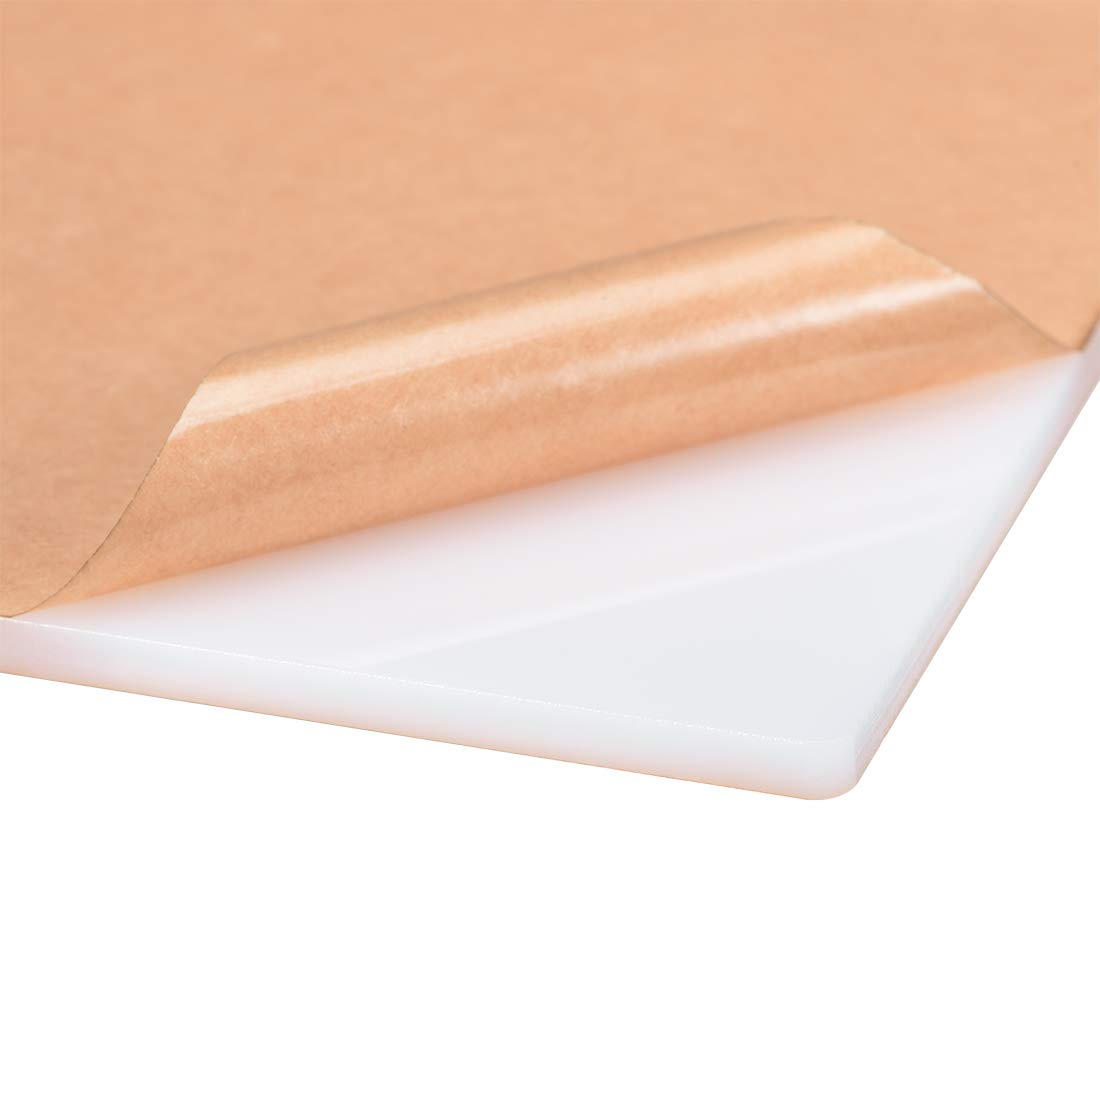 297x210mm uxcell White Cast Acrylic Plexi Glass Sheet,12x 8 Square Panel 3mm Thick,Plastic Plexi Glass Board for Picture Frames Sign Holders Craft